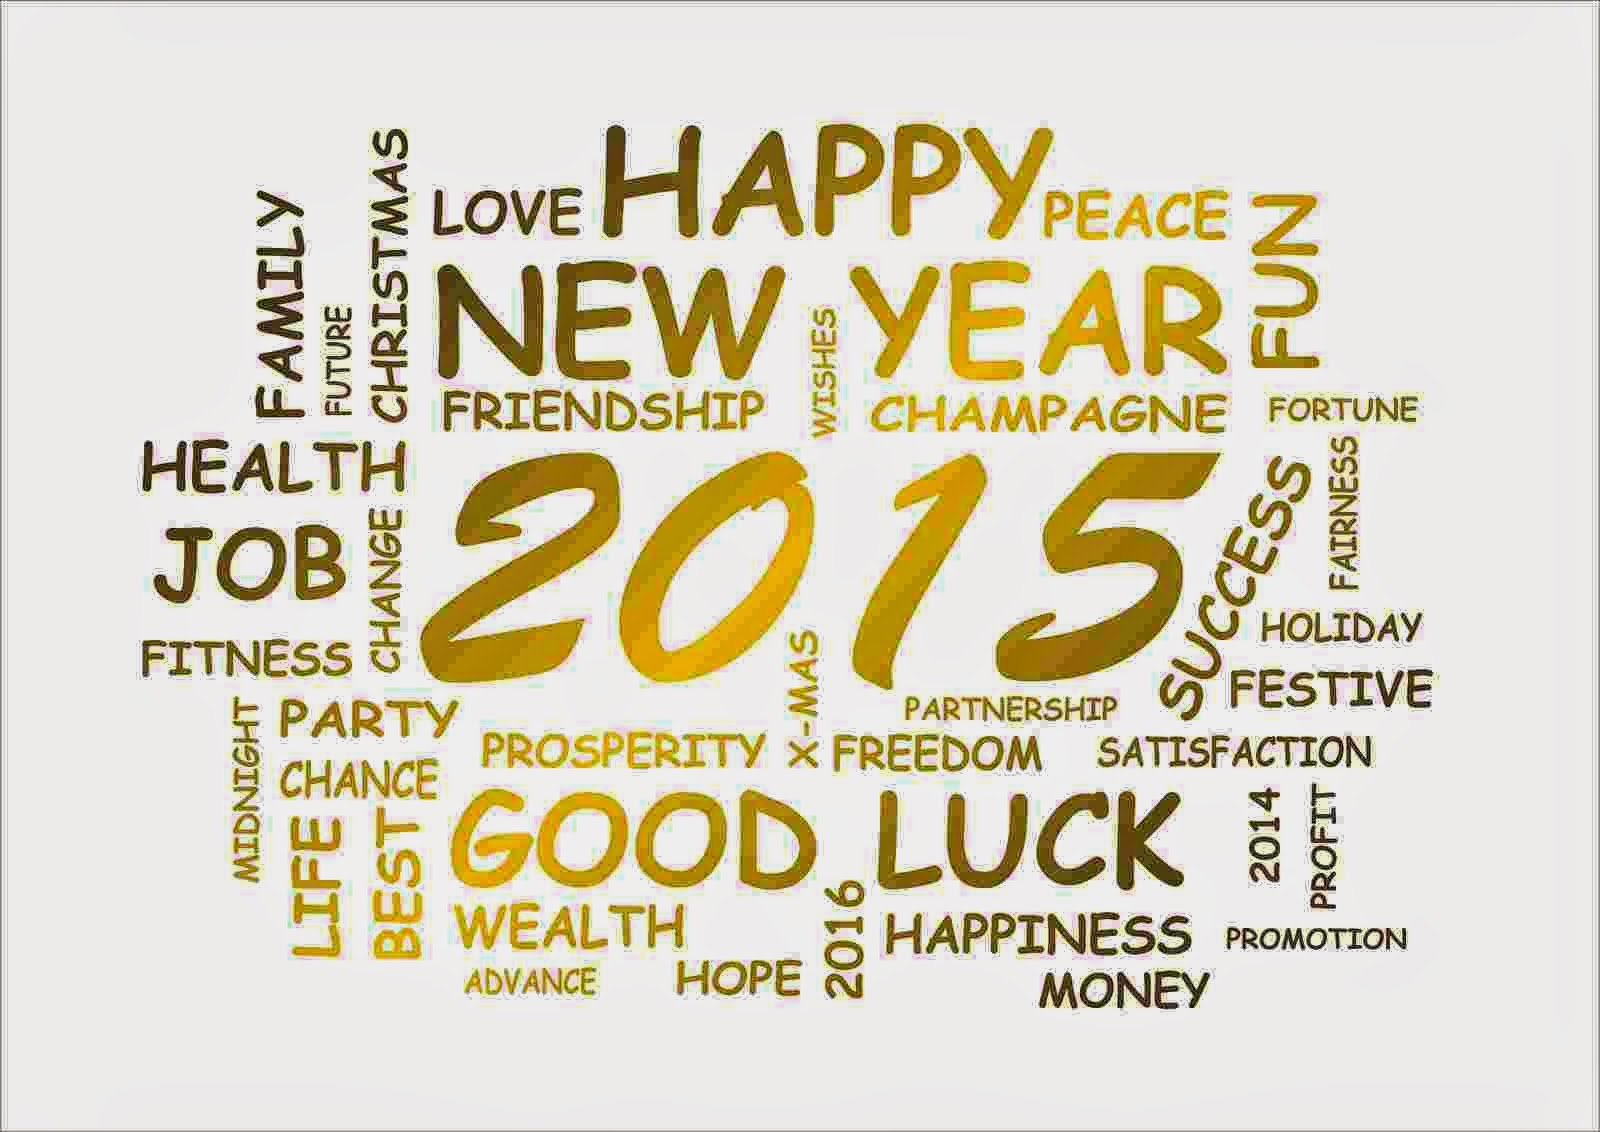 happy-new-year-images-2015-pics-for-wishes1